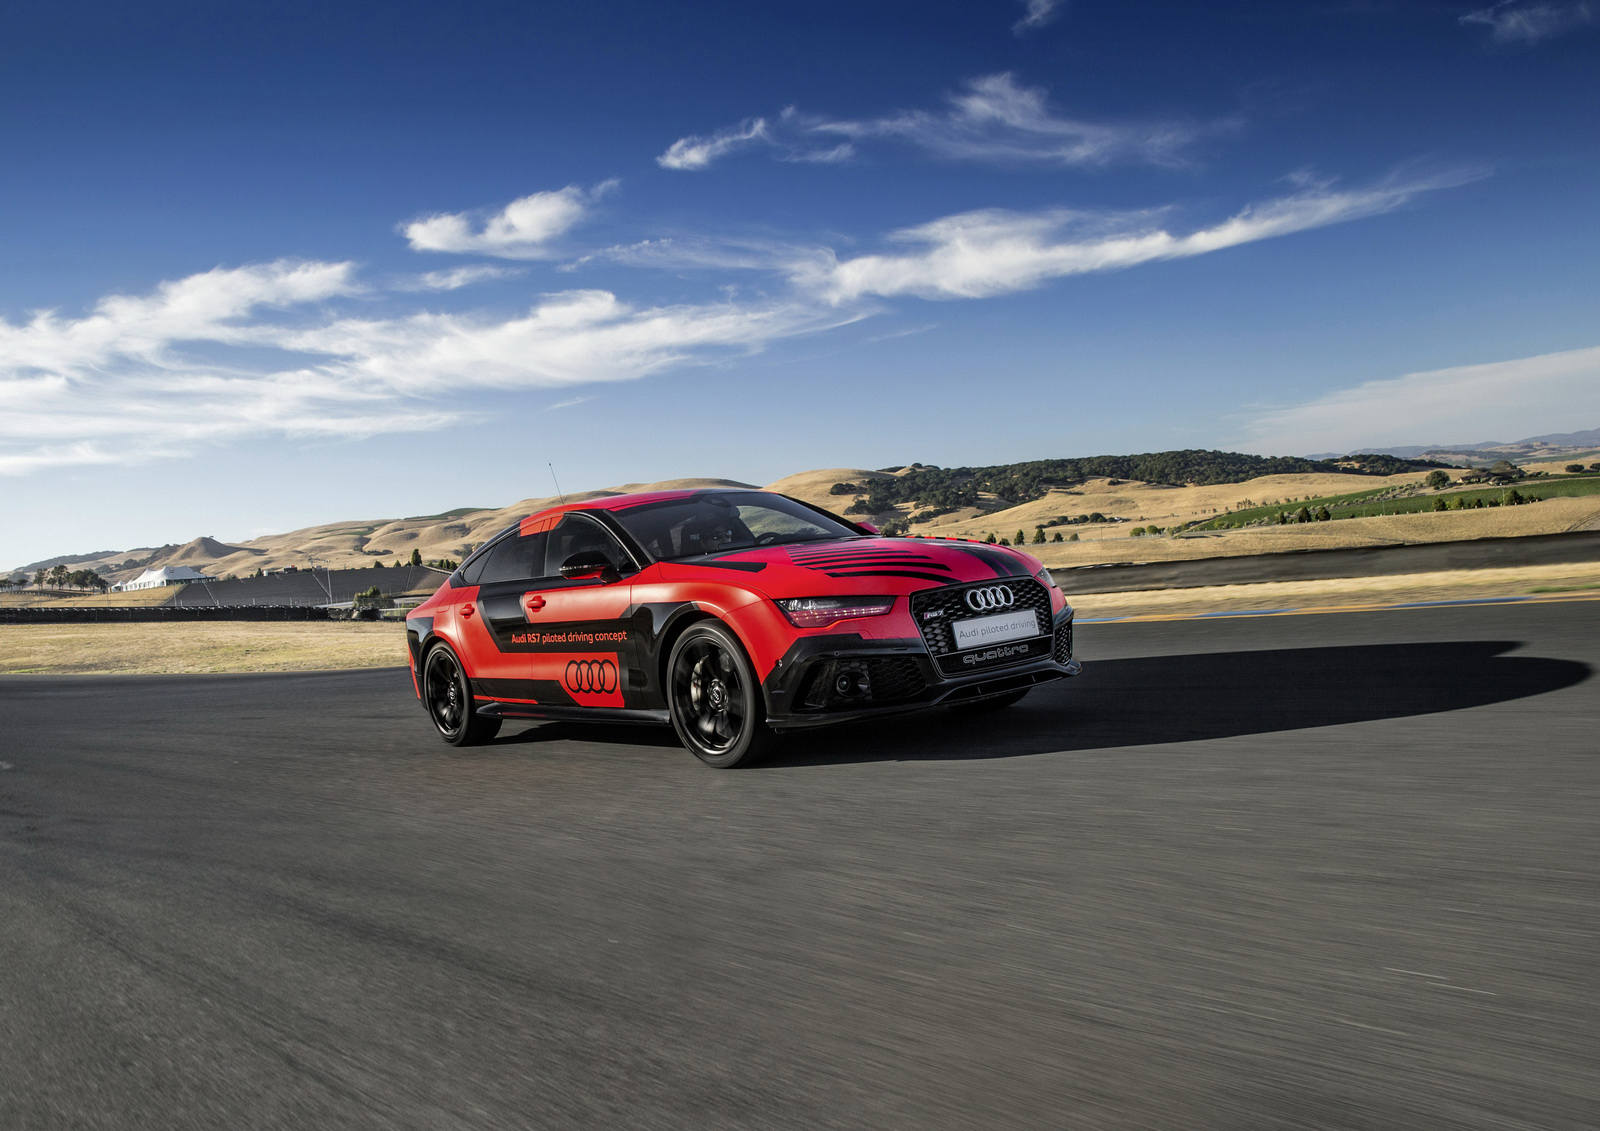 Des nouvelles de la RS7 Piloted Driving - Photo n°9